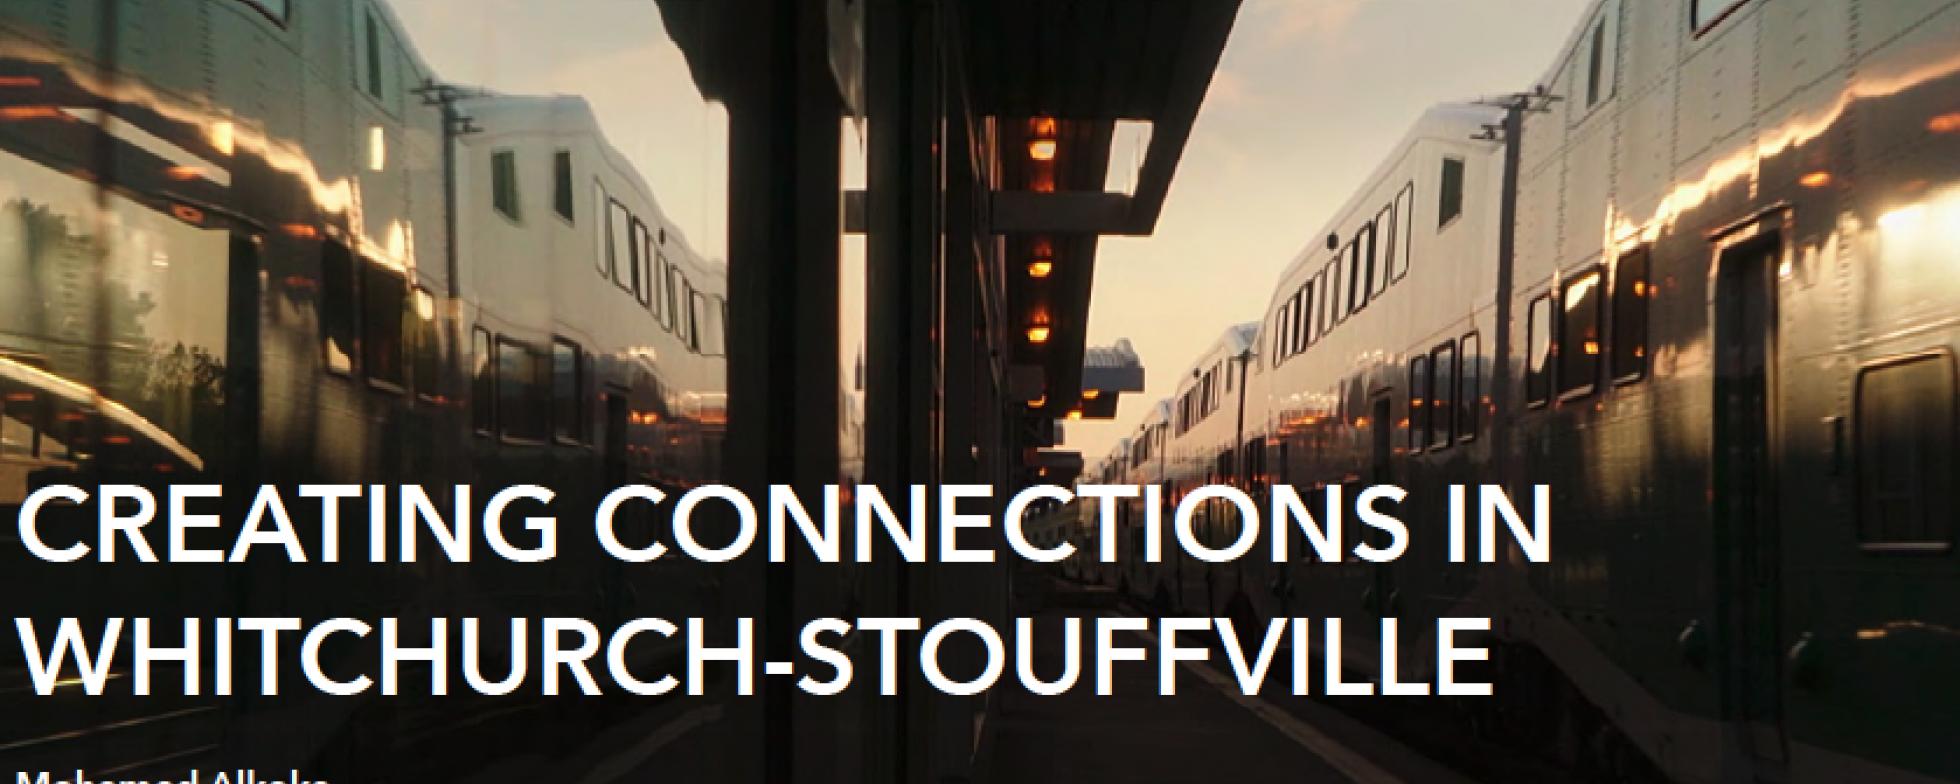 Creating Connections in Whitchurch-Stouffville presentation cover